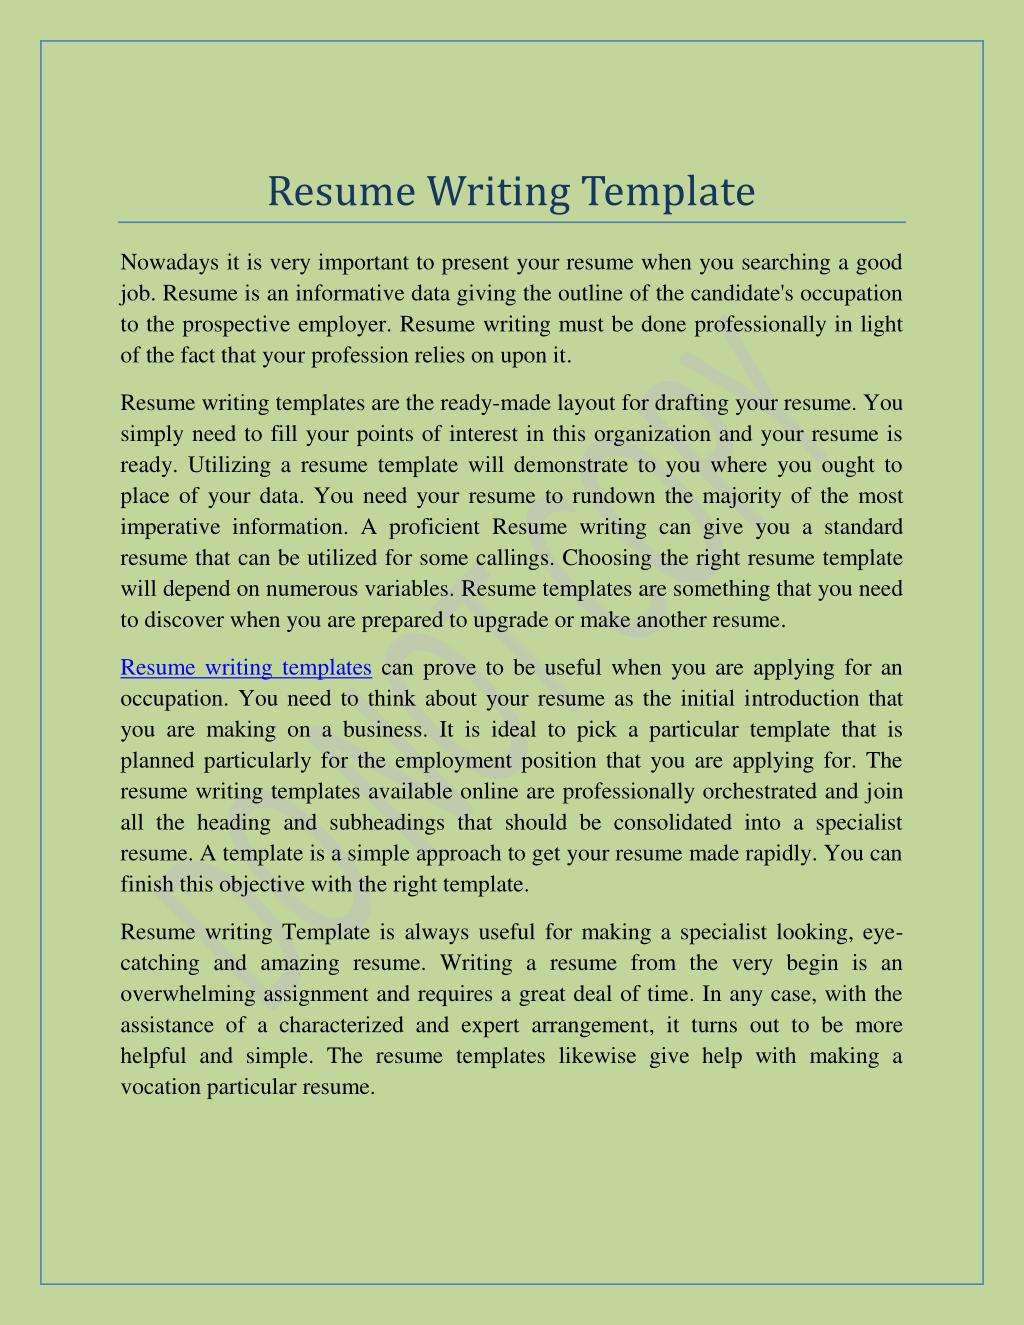 Ppt Resume Writing Templates Resume In Minutes Free Resume